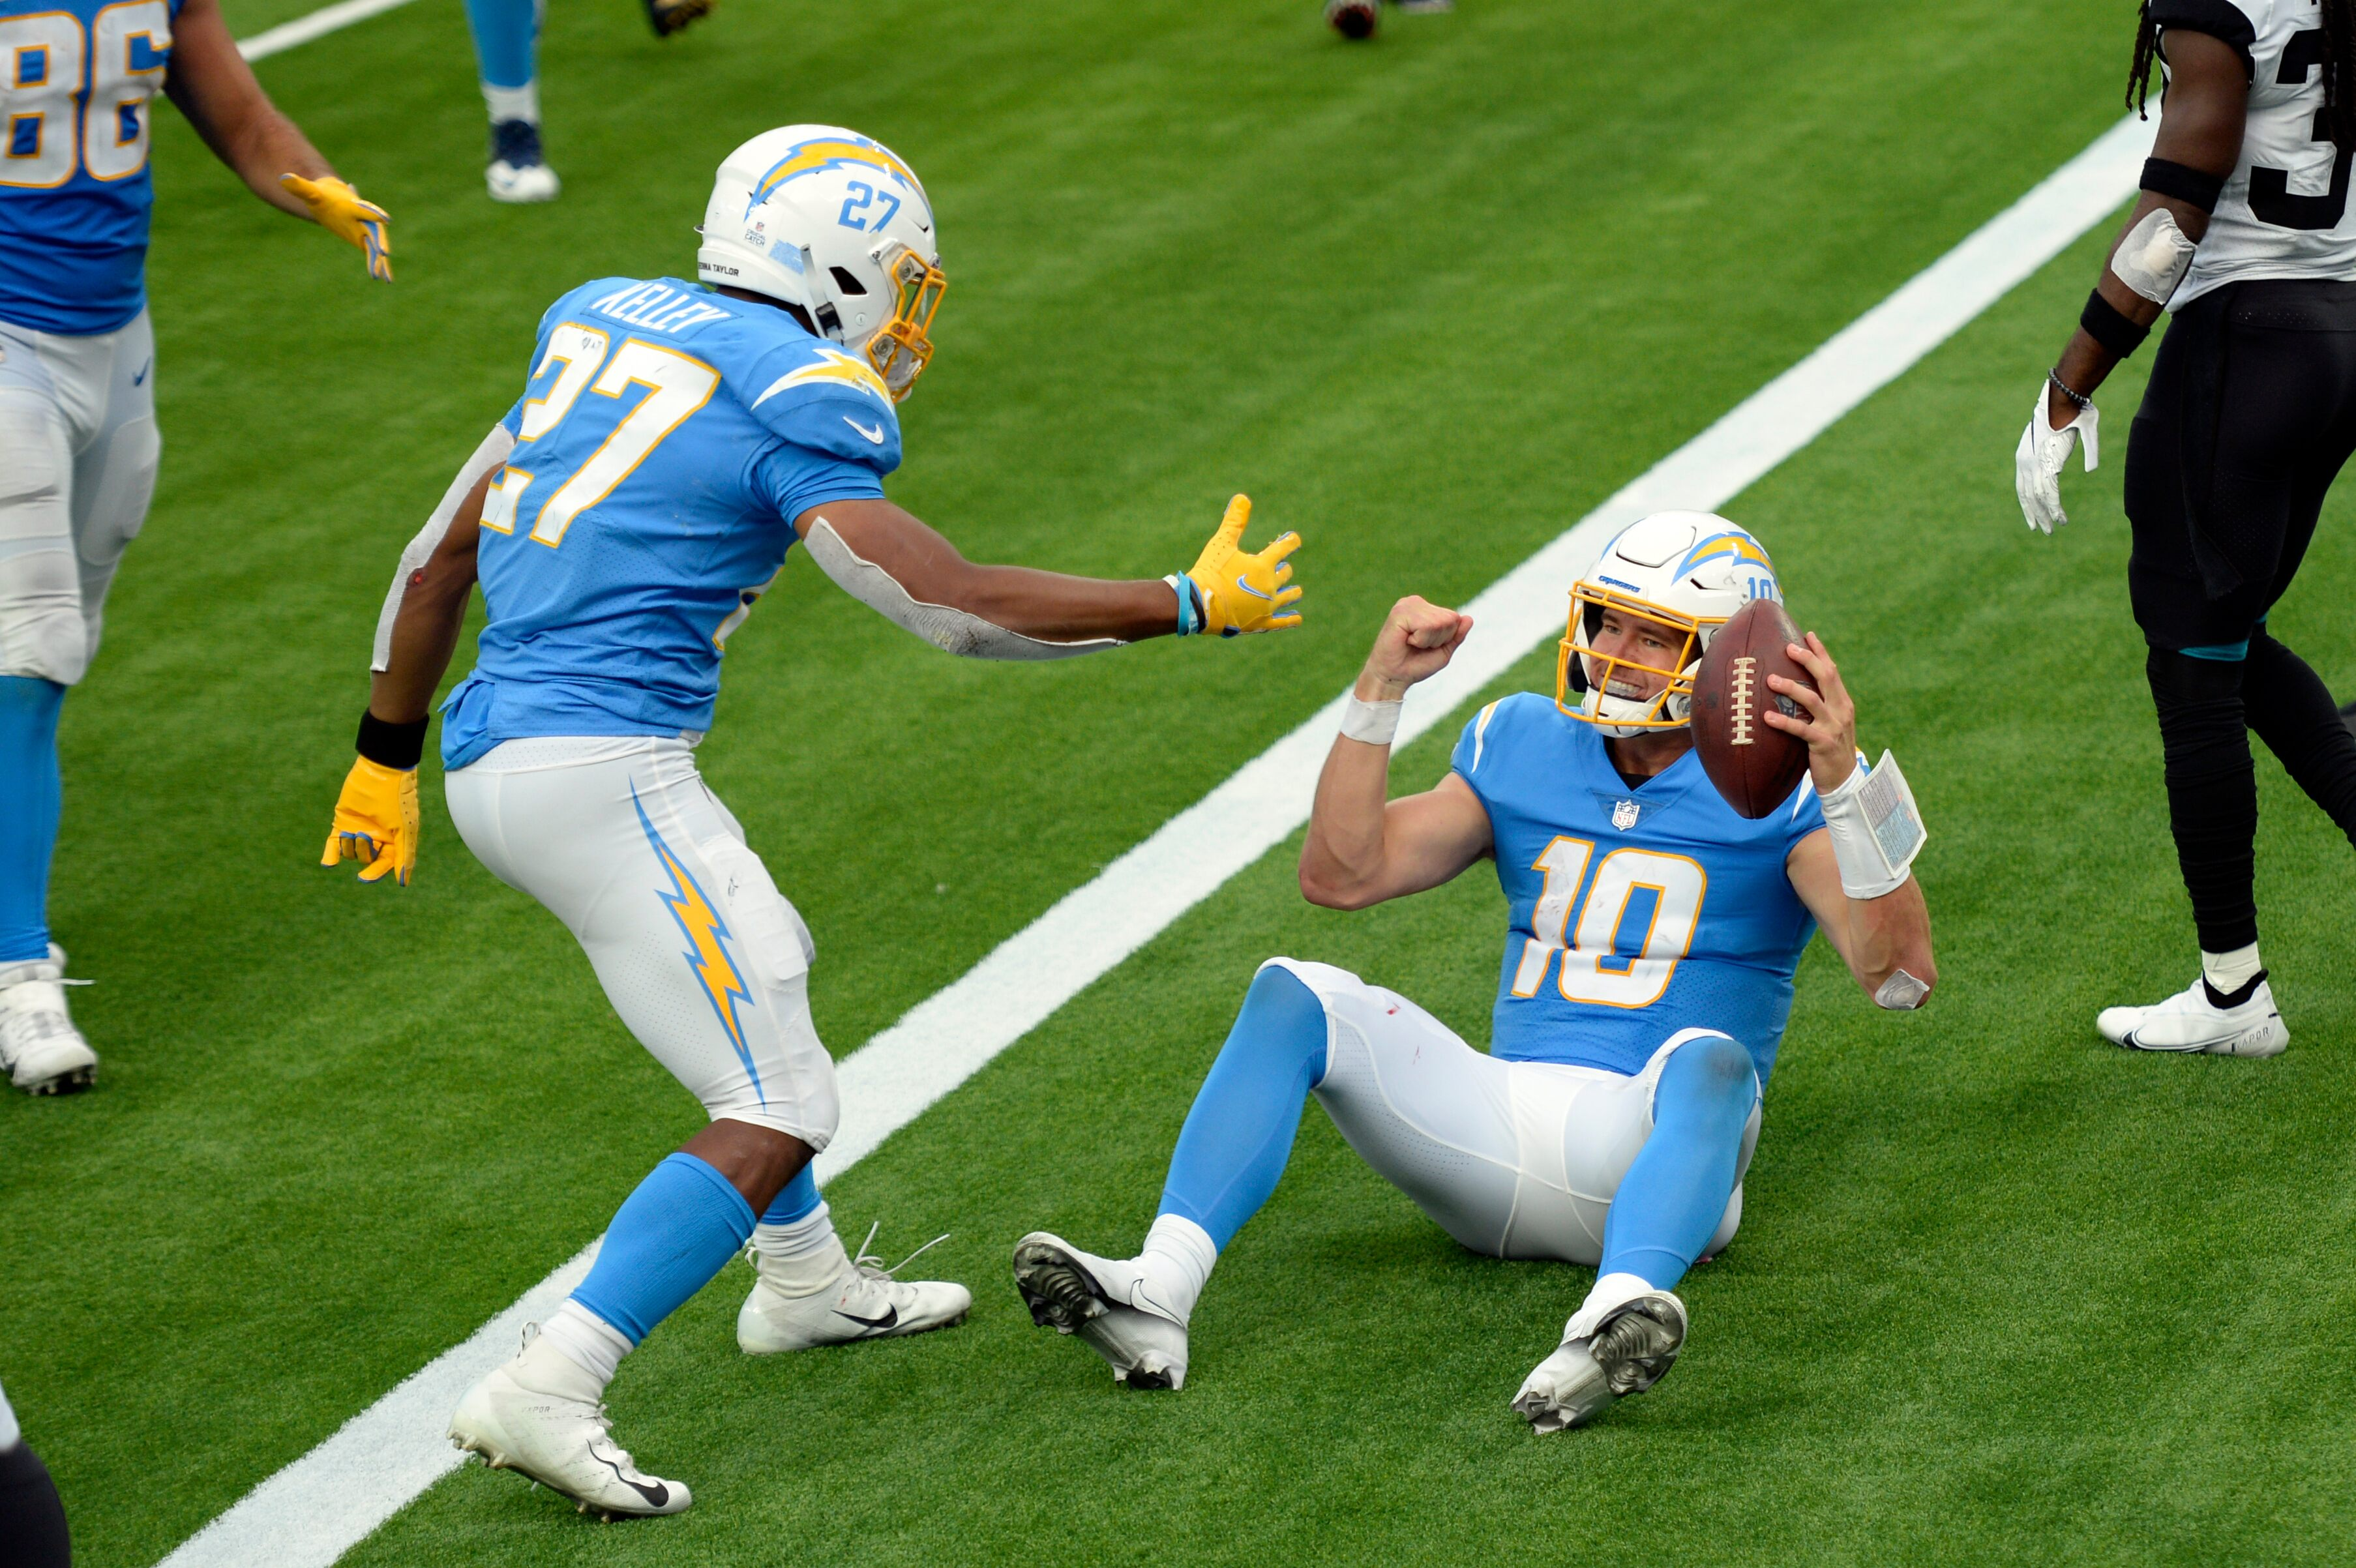 Herbert leads Chargers to 39-29 victory over Jaguars